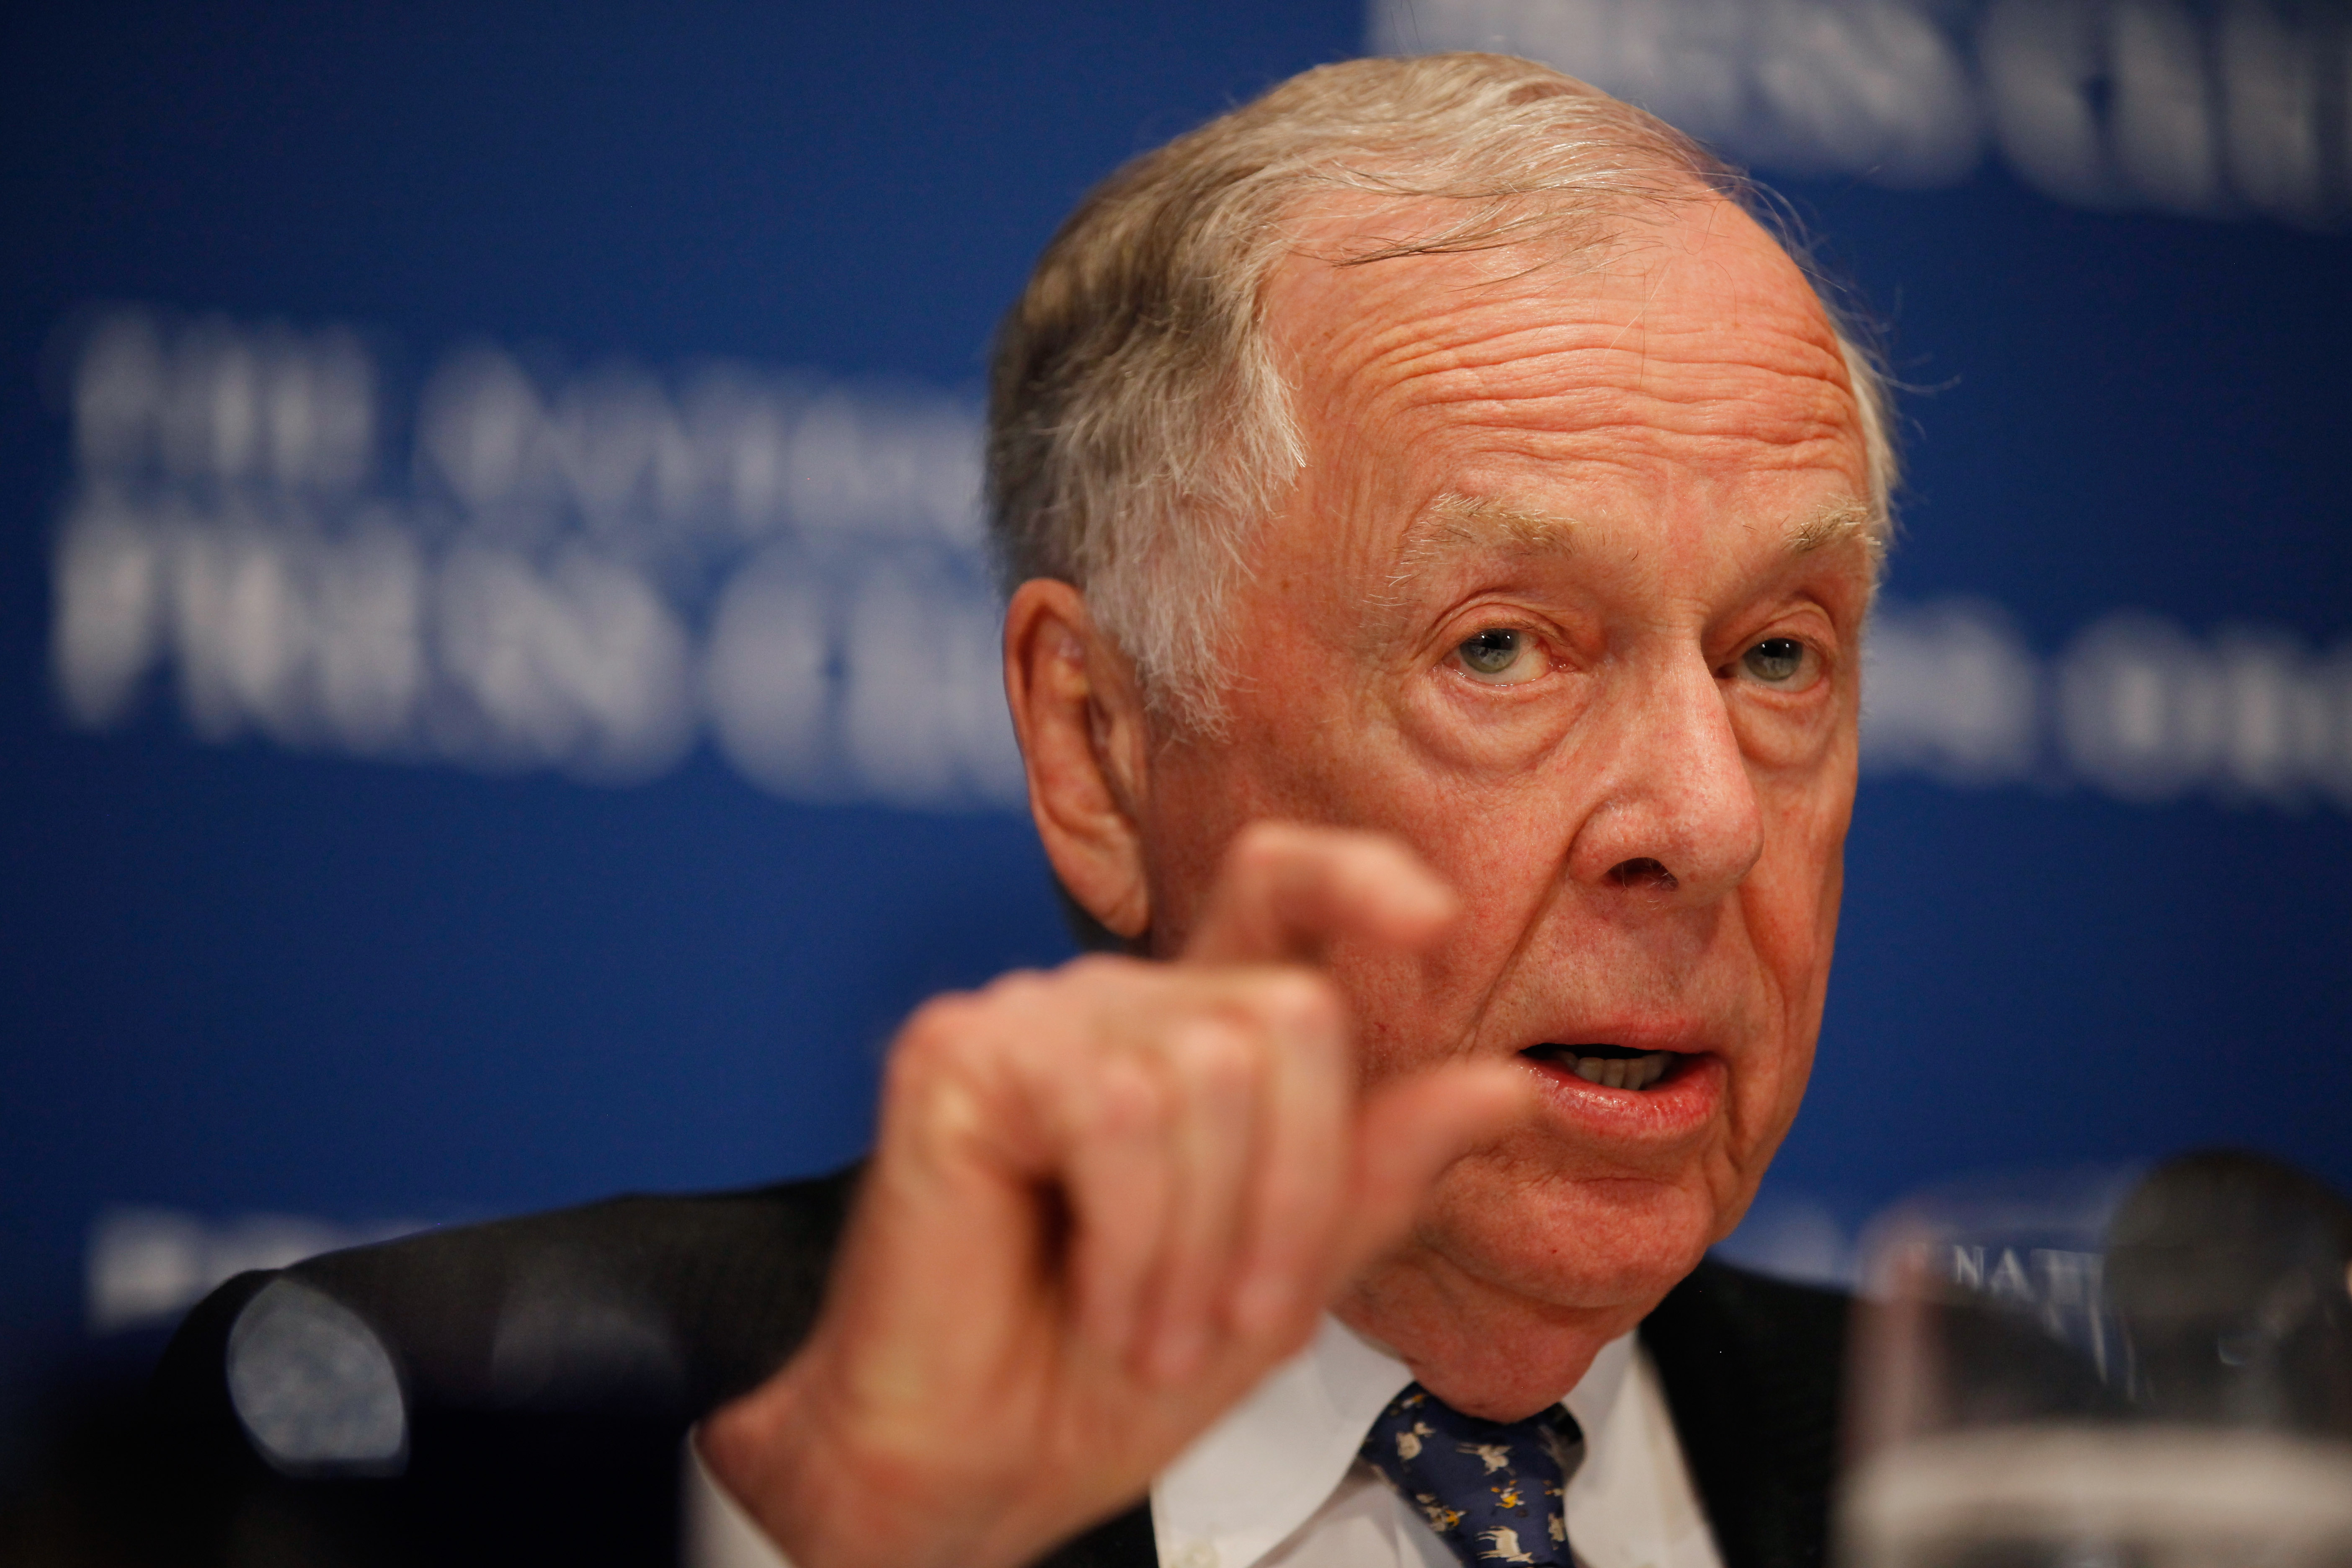 T. Boone Pickens challenges Obama to an hour-long workout ...